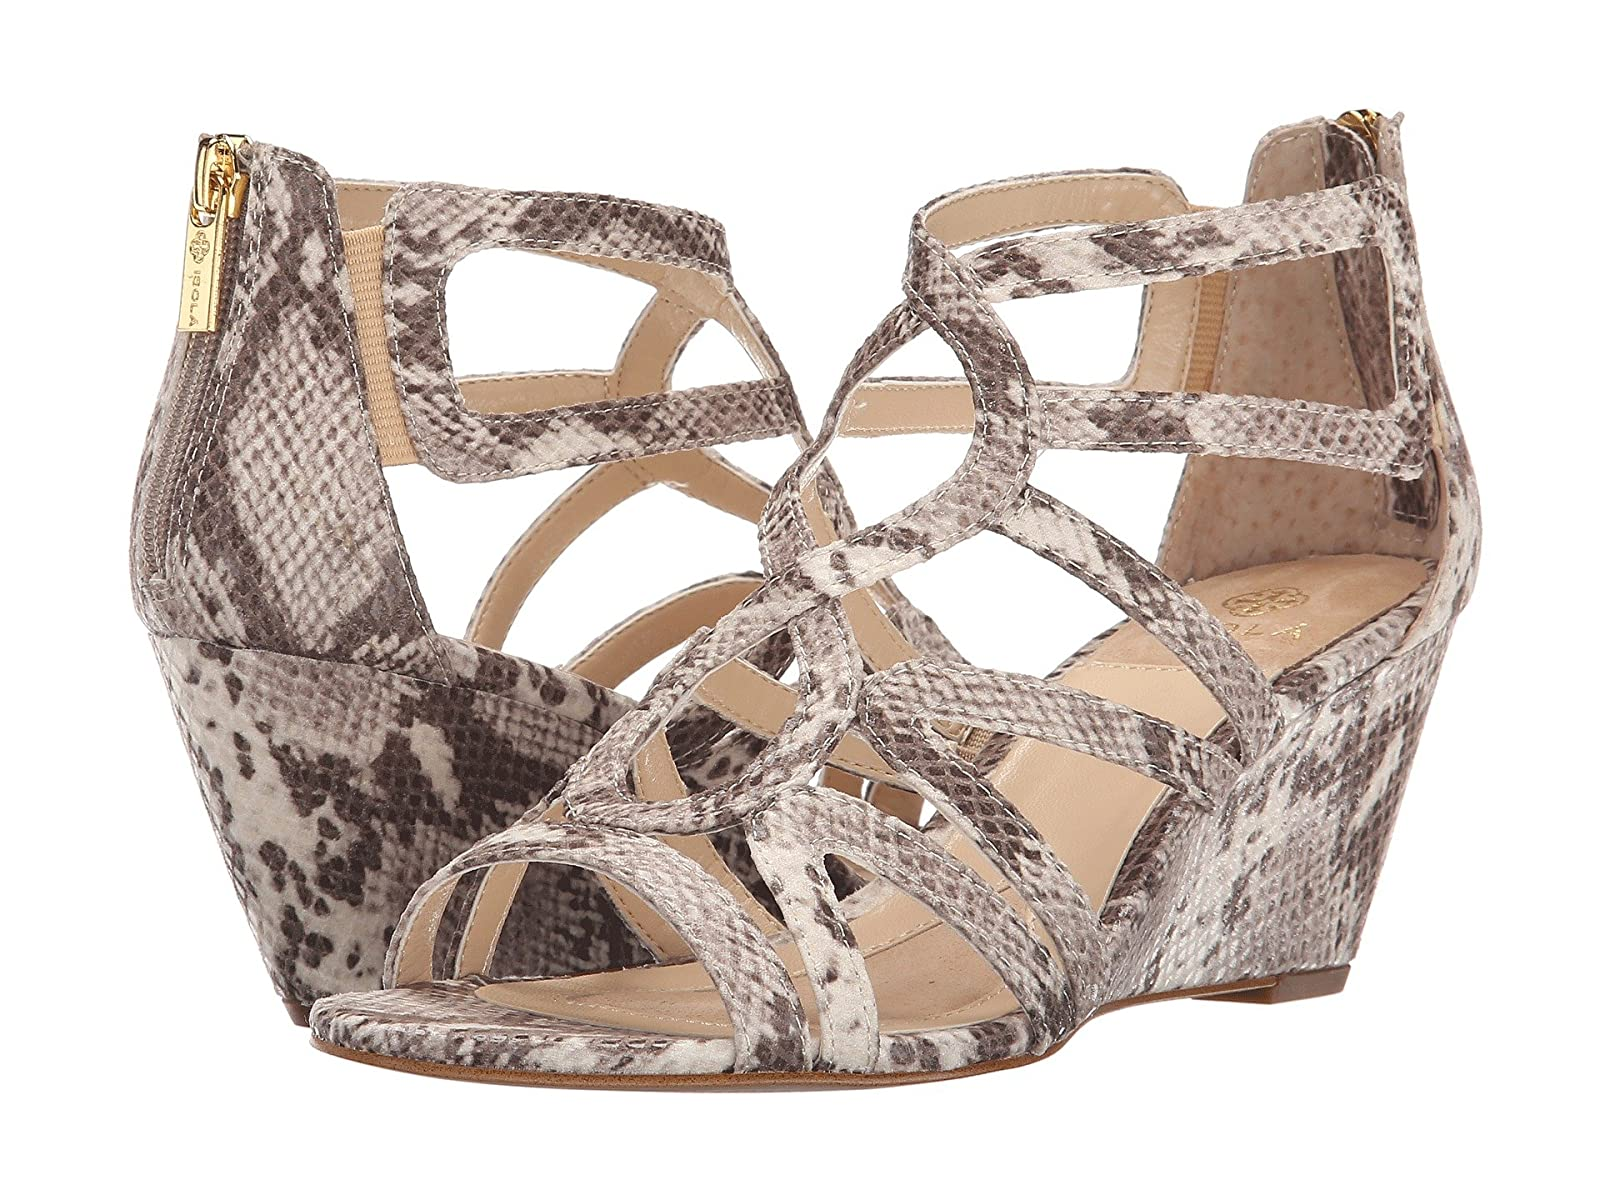 Isola FloraCheap and distinctive eye-catching shoes